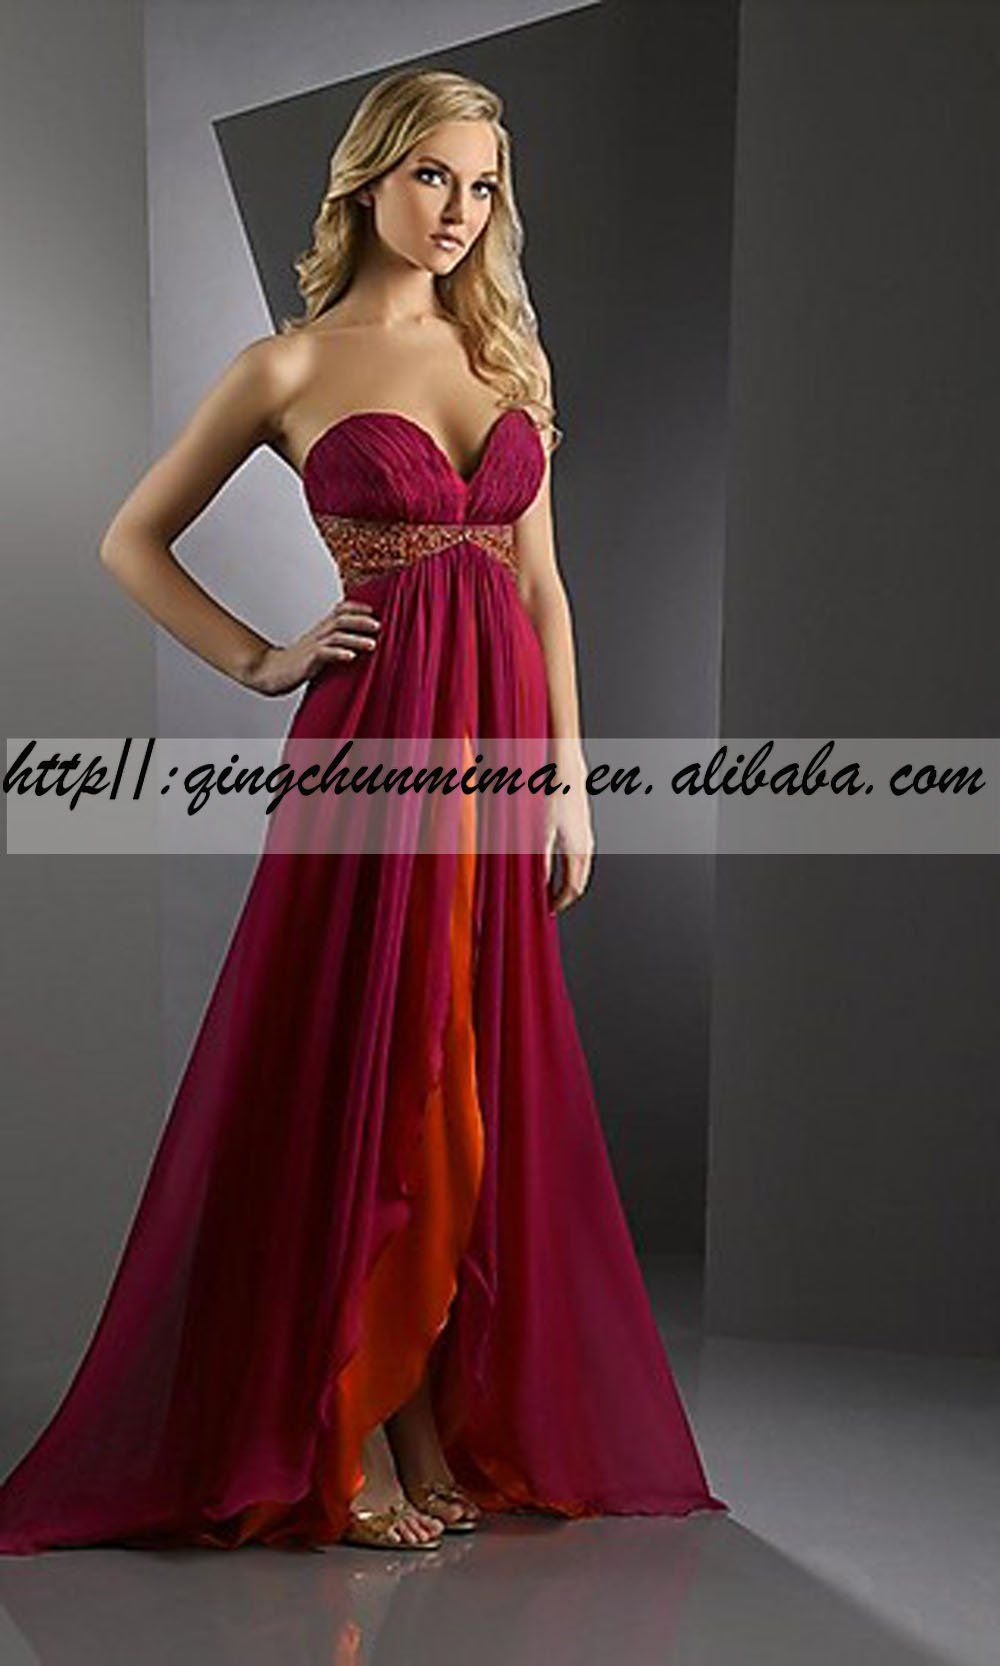 Fairytales beautiful gowns pinterest senior prom prom and clothes